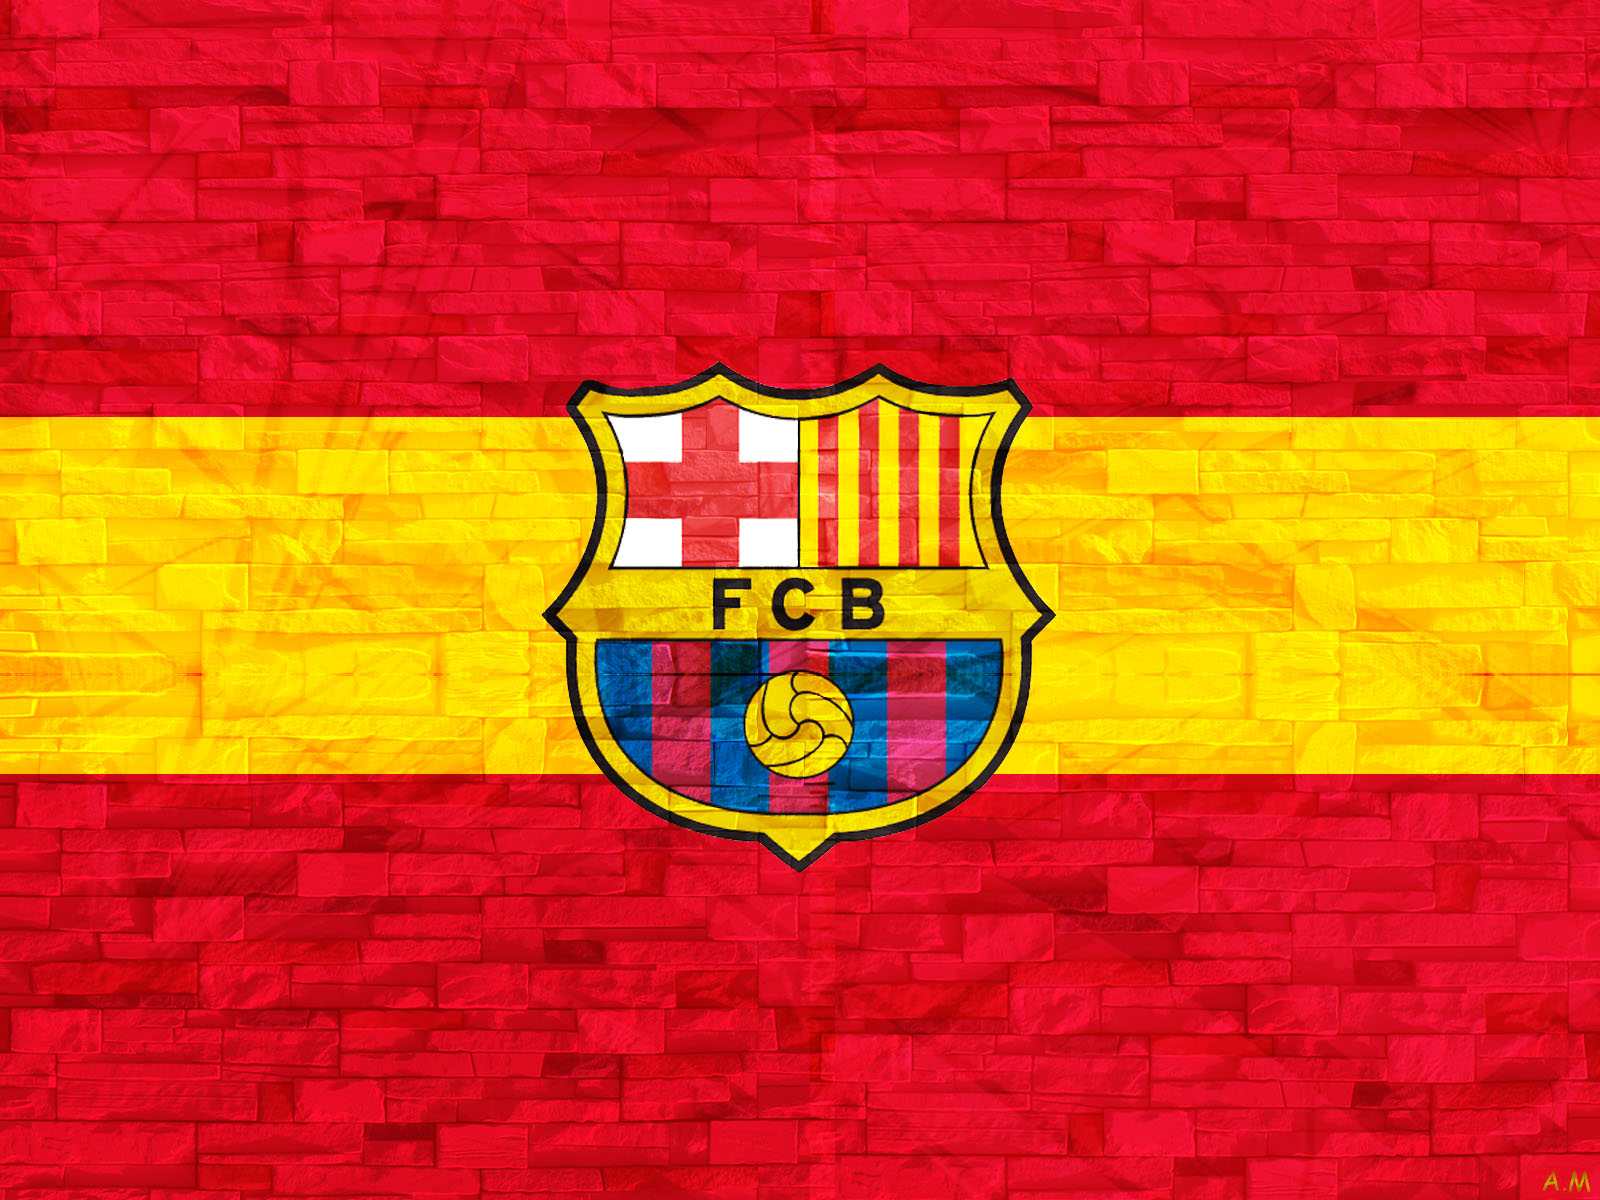 HD FC barcelona Wallpaper HD Wallpaper 1600x1200